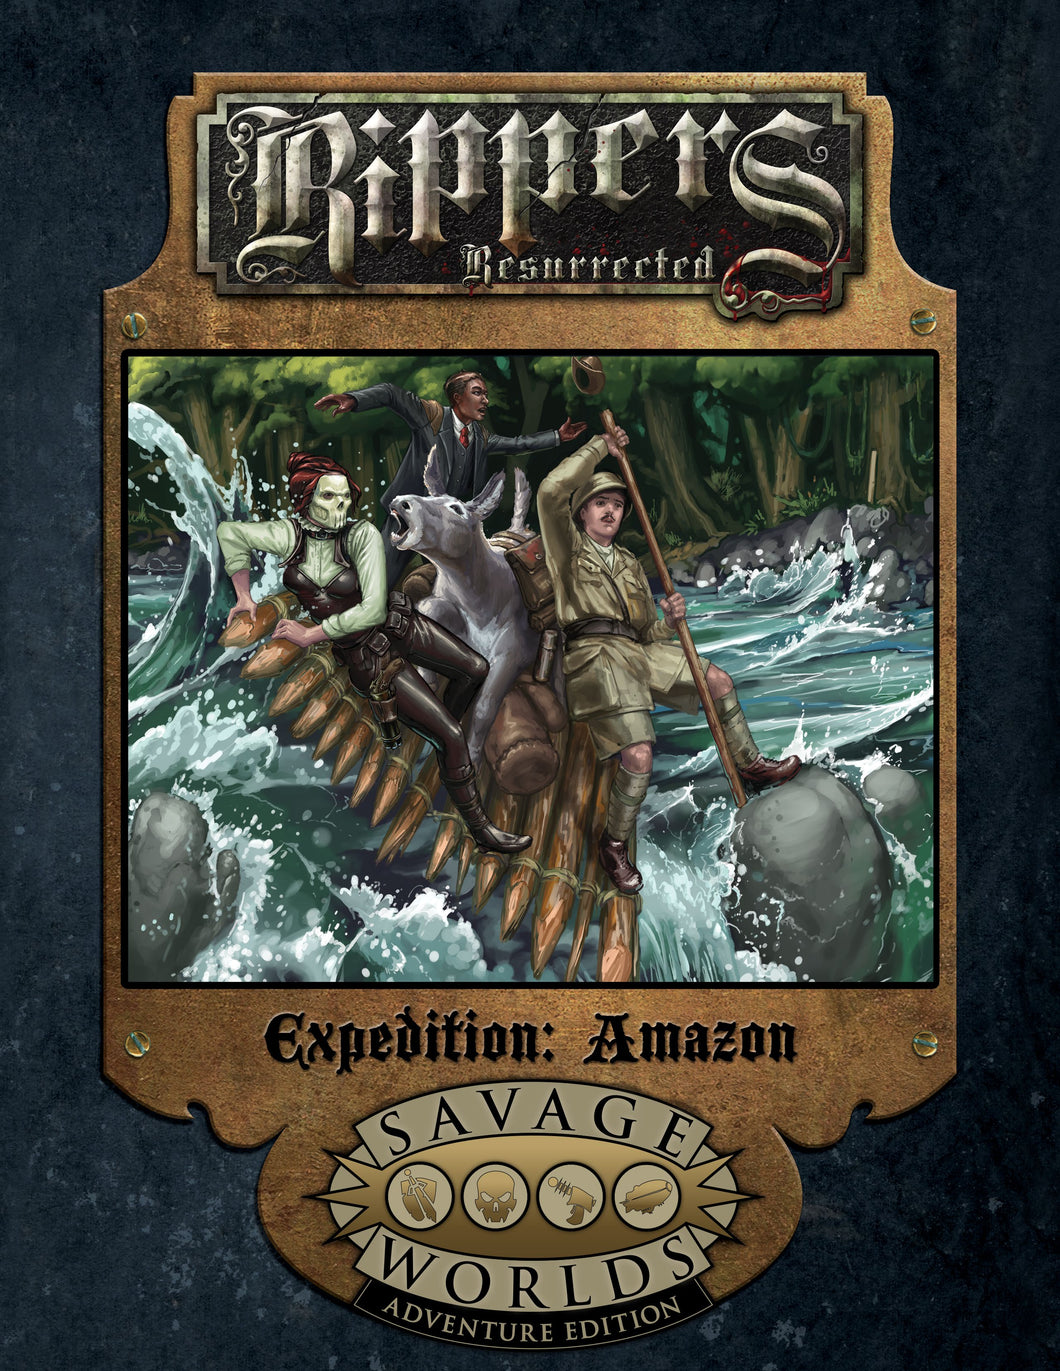 Savage Worlds RPG Rippers Resurrected Expedition: Amazon (Adventure Edition)